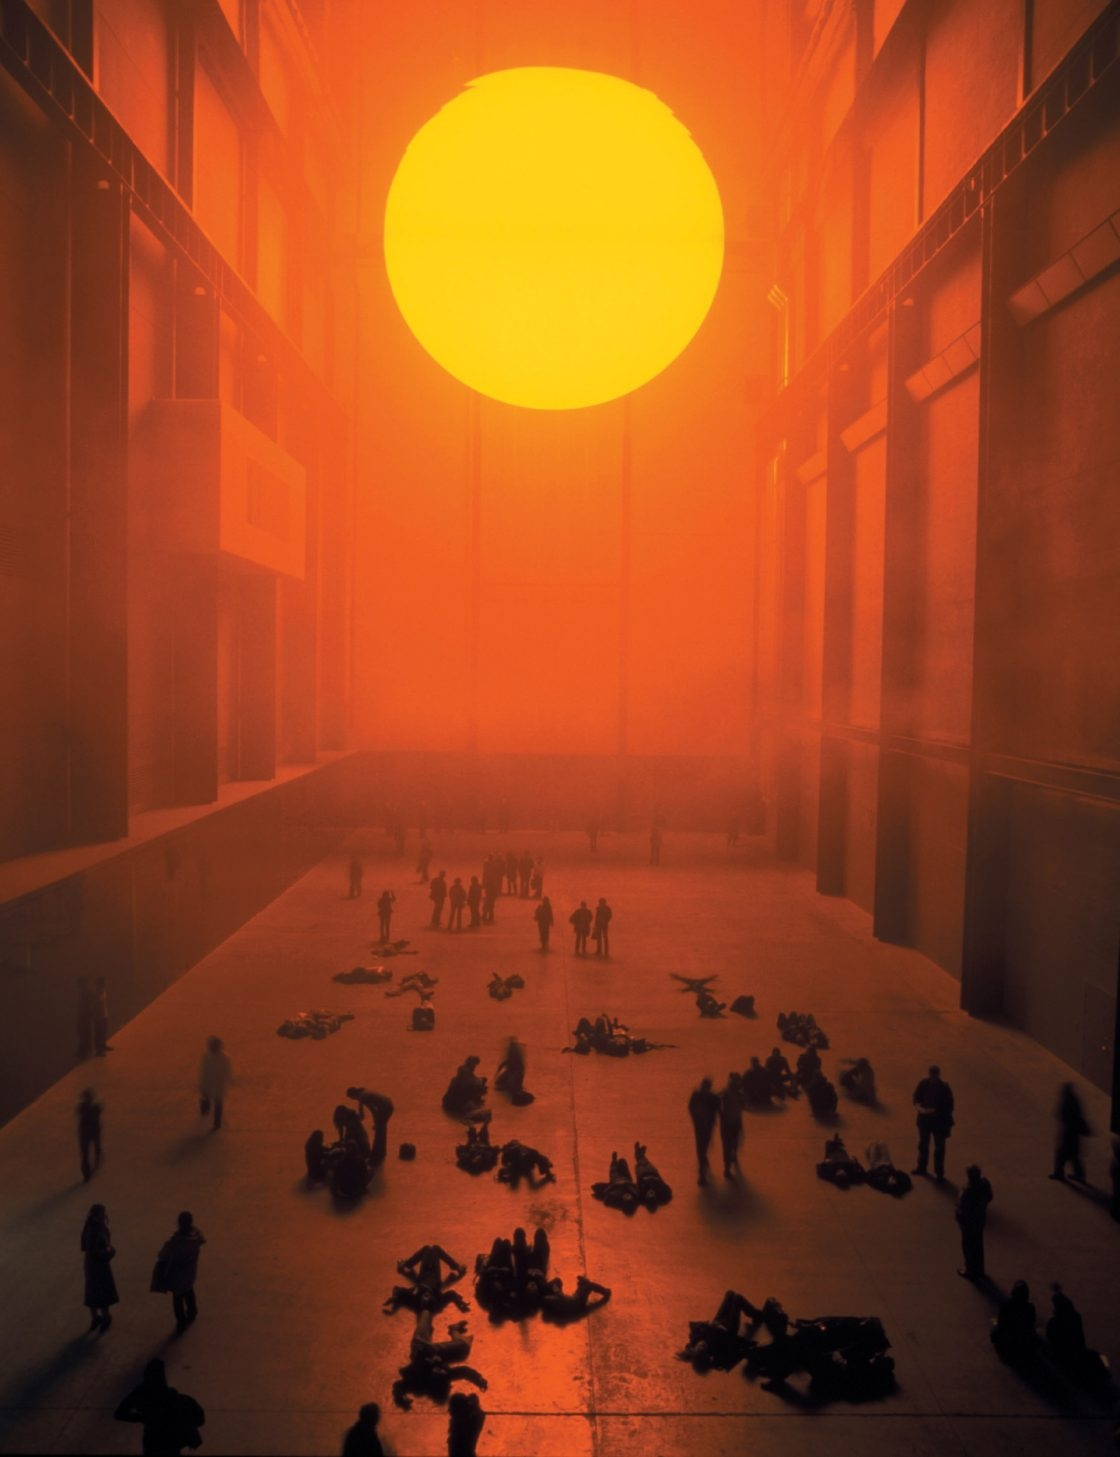 'The weather project', Monofrequency lights, projection foil, haze machines, mirror foil, aluminium, scaffolding, 26,7m×22,3m×155,44m, Tate Modern, London, 2003 Photo: Andrew Dunkley & Marcus Leith, Courtesy of the artist; neugerriemschneider, Berlin; and Tanya Bonakdar Gallery, New York © Olafur Eliasson